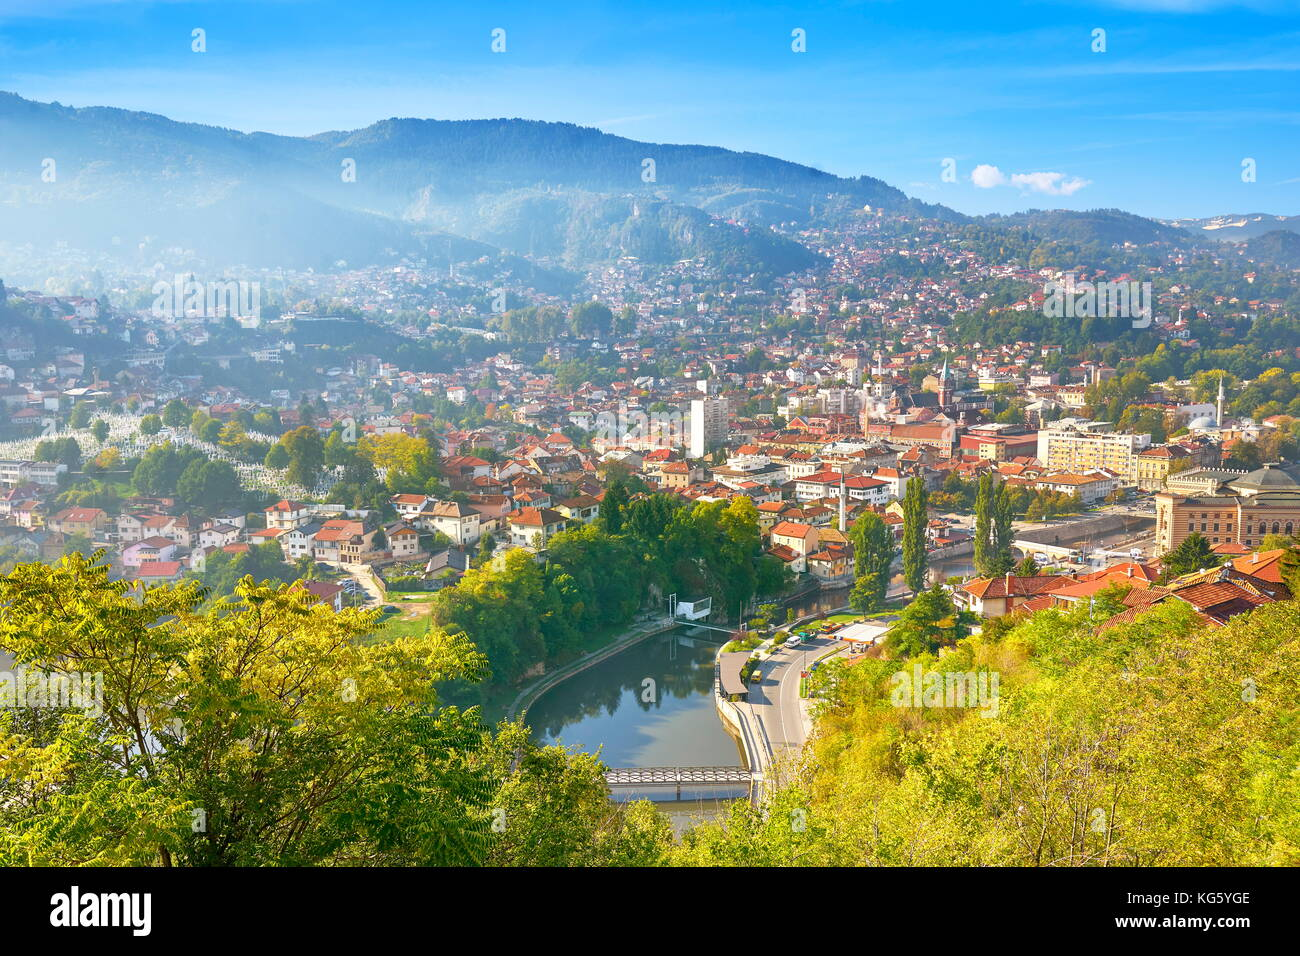 Aerial view of Sarajevo, capital city of Bosnia Herzegovina - Stock Image